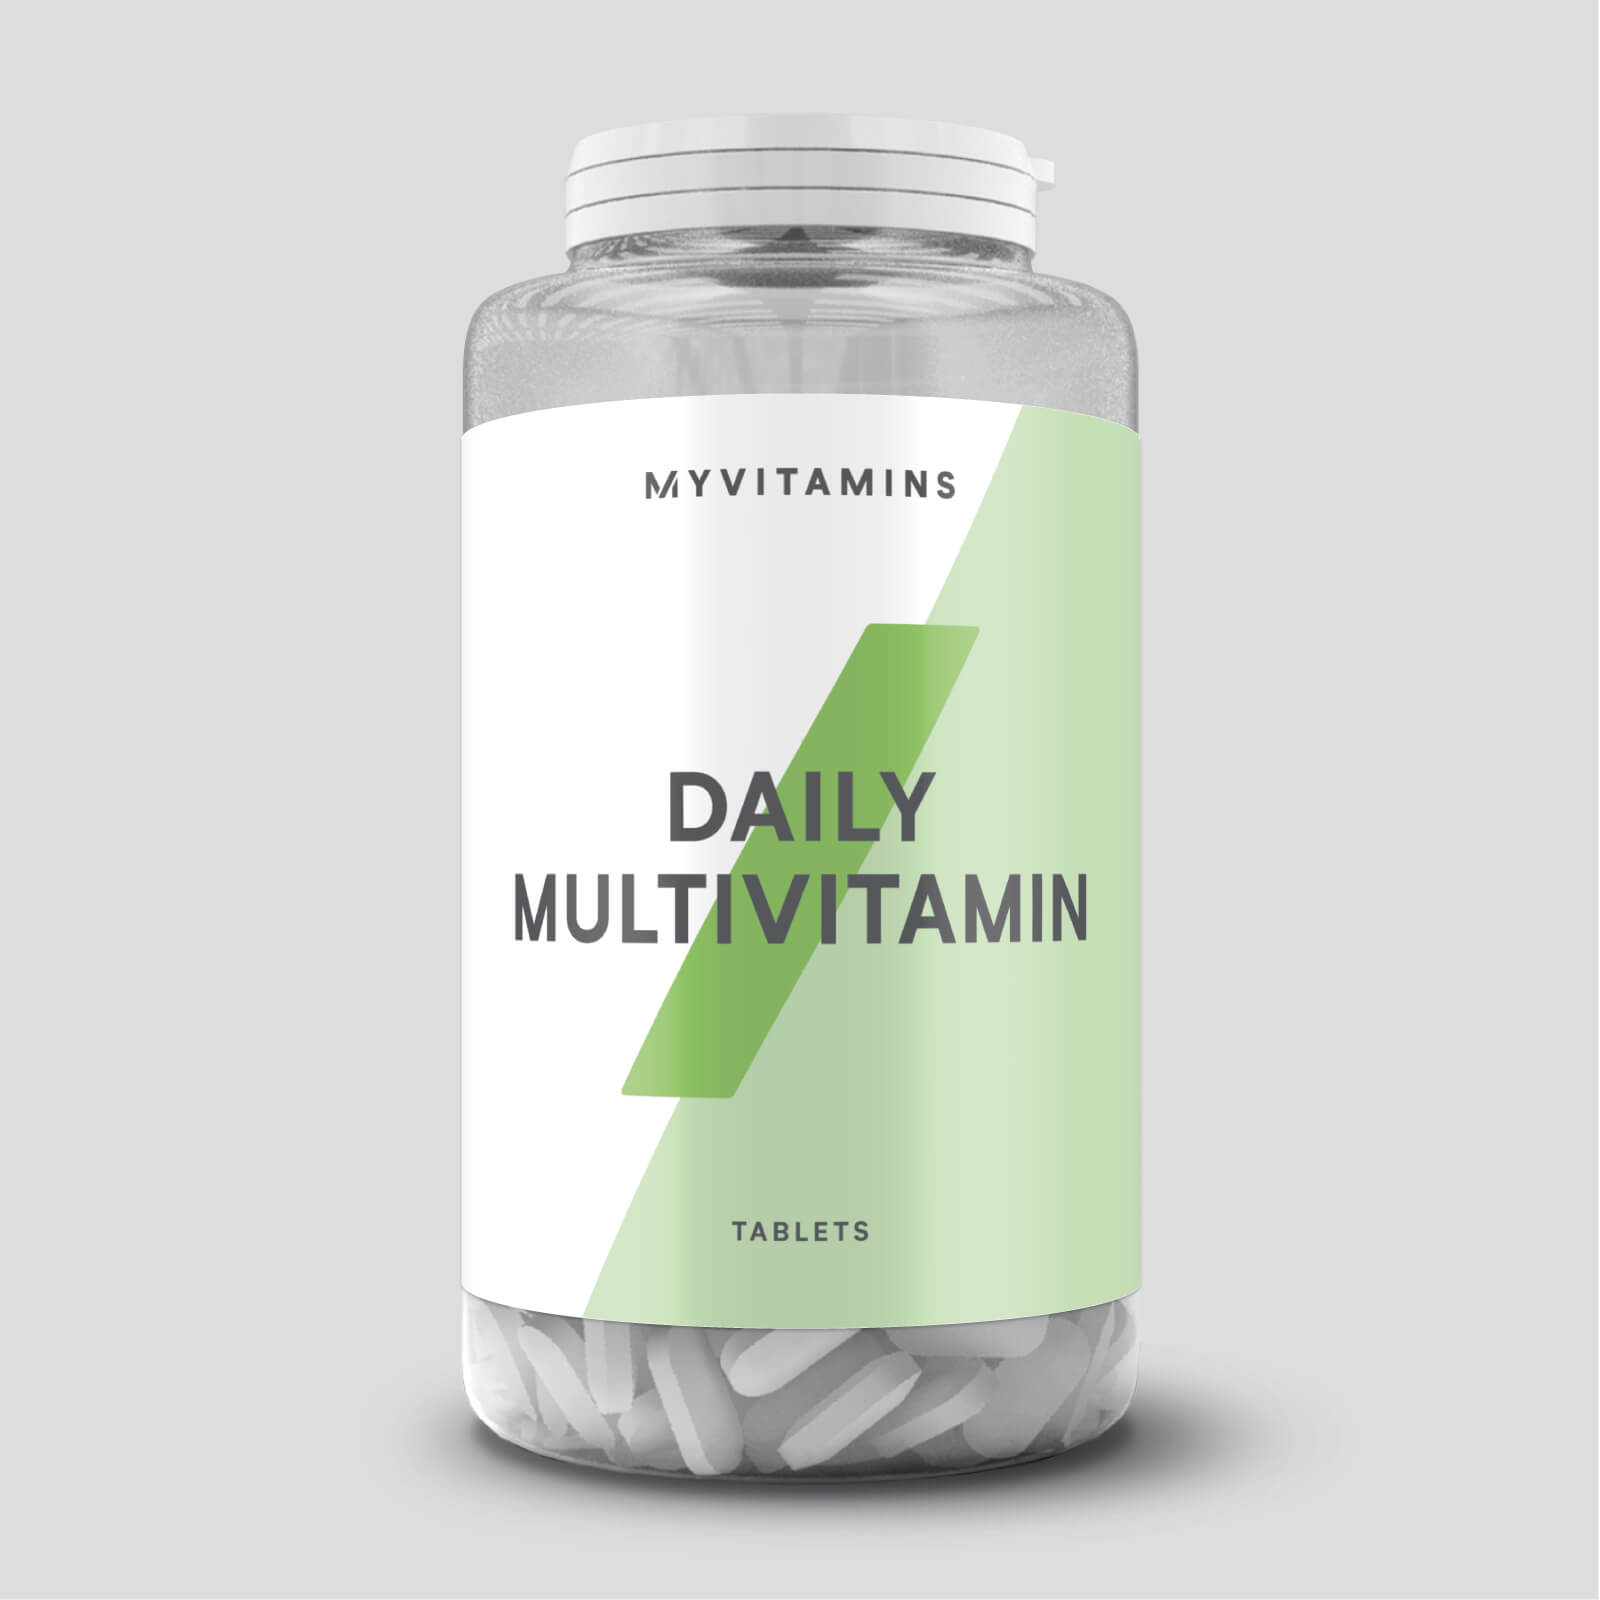 Myvitamins Daily Multivitamin 180 таблеток